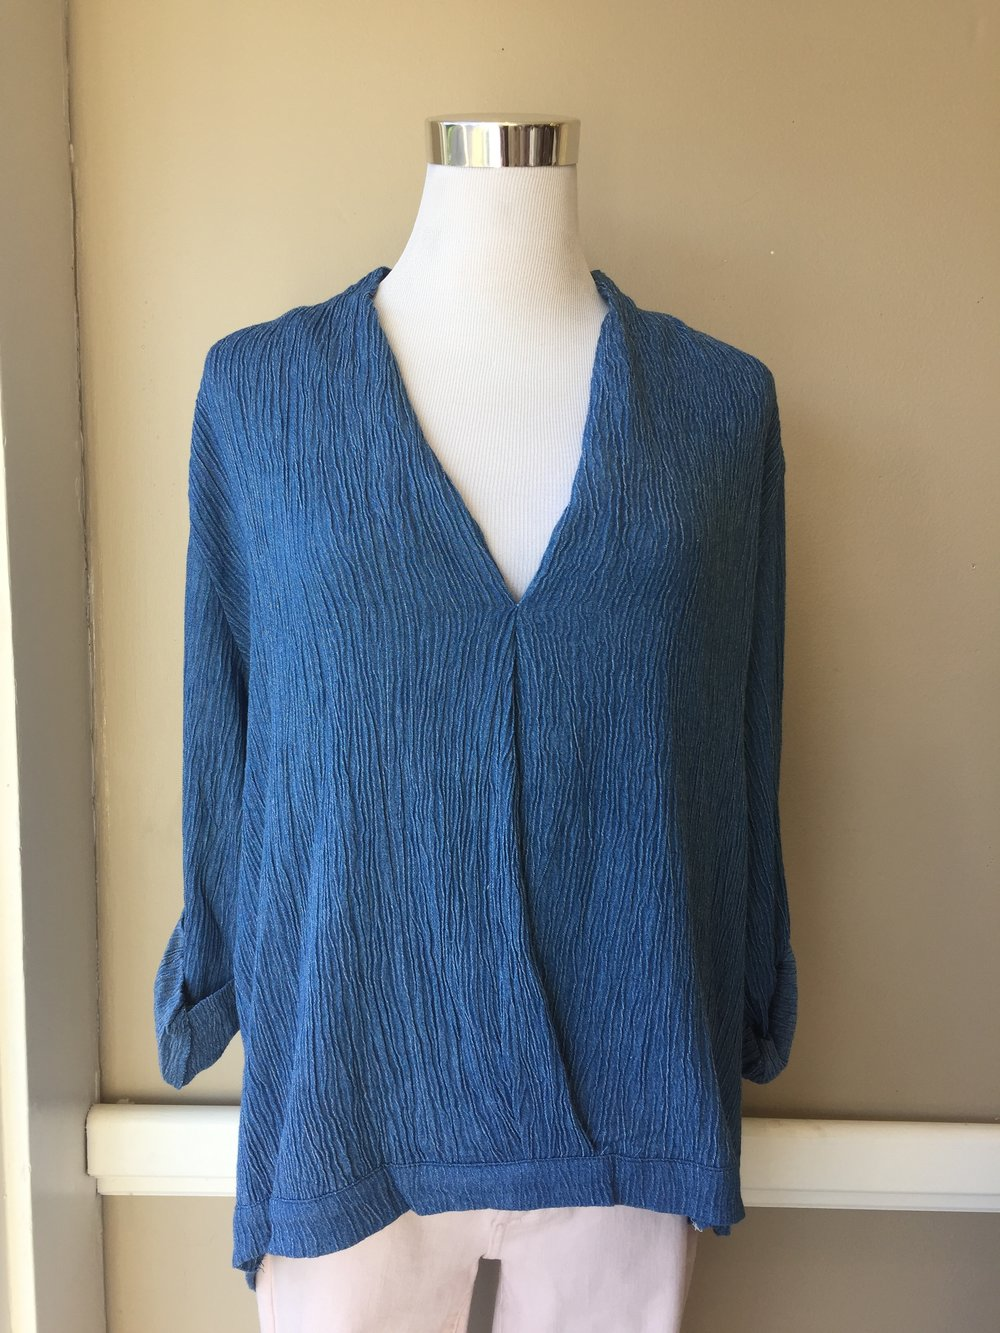 Denim Twist Top $42